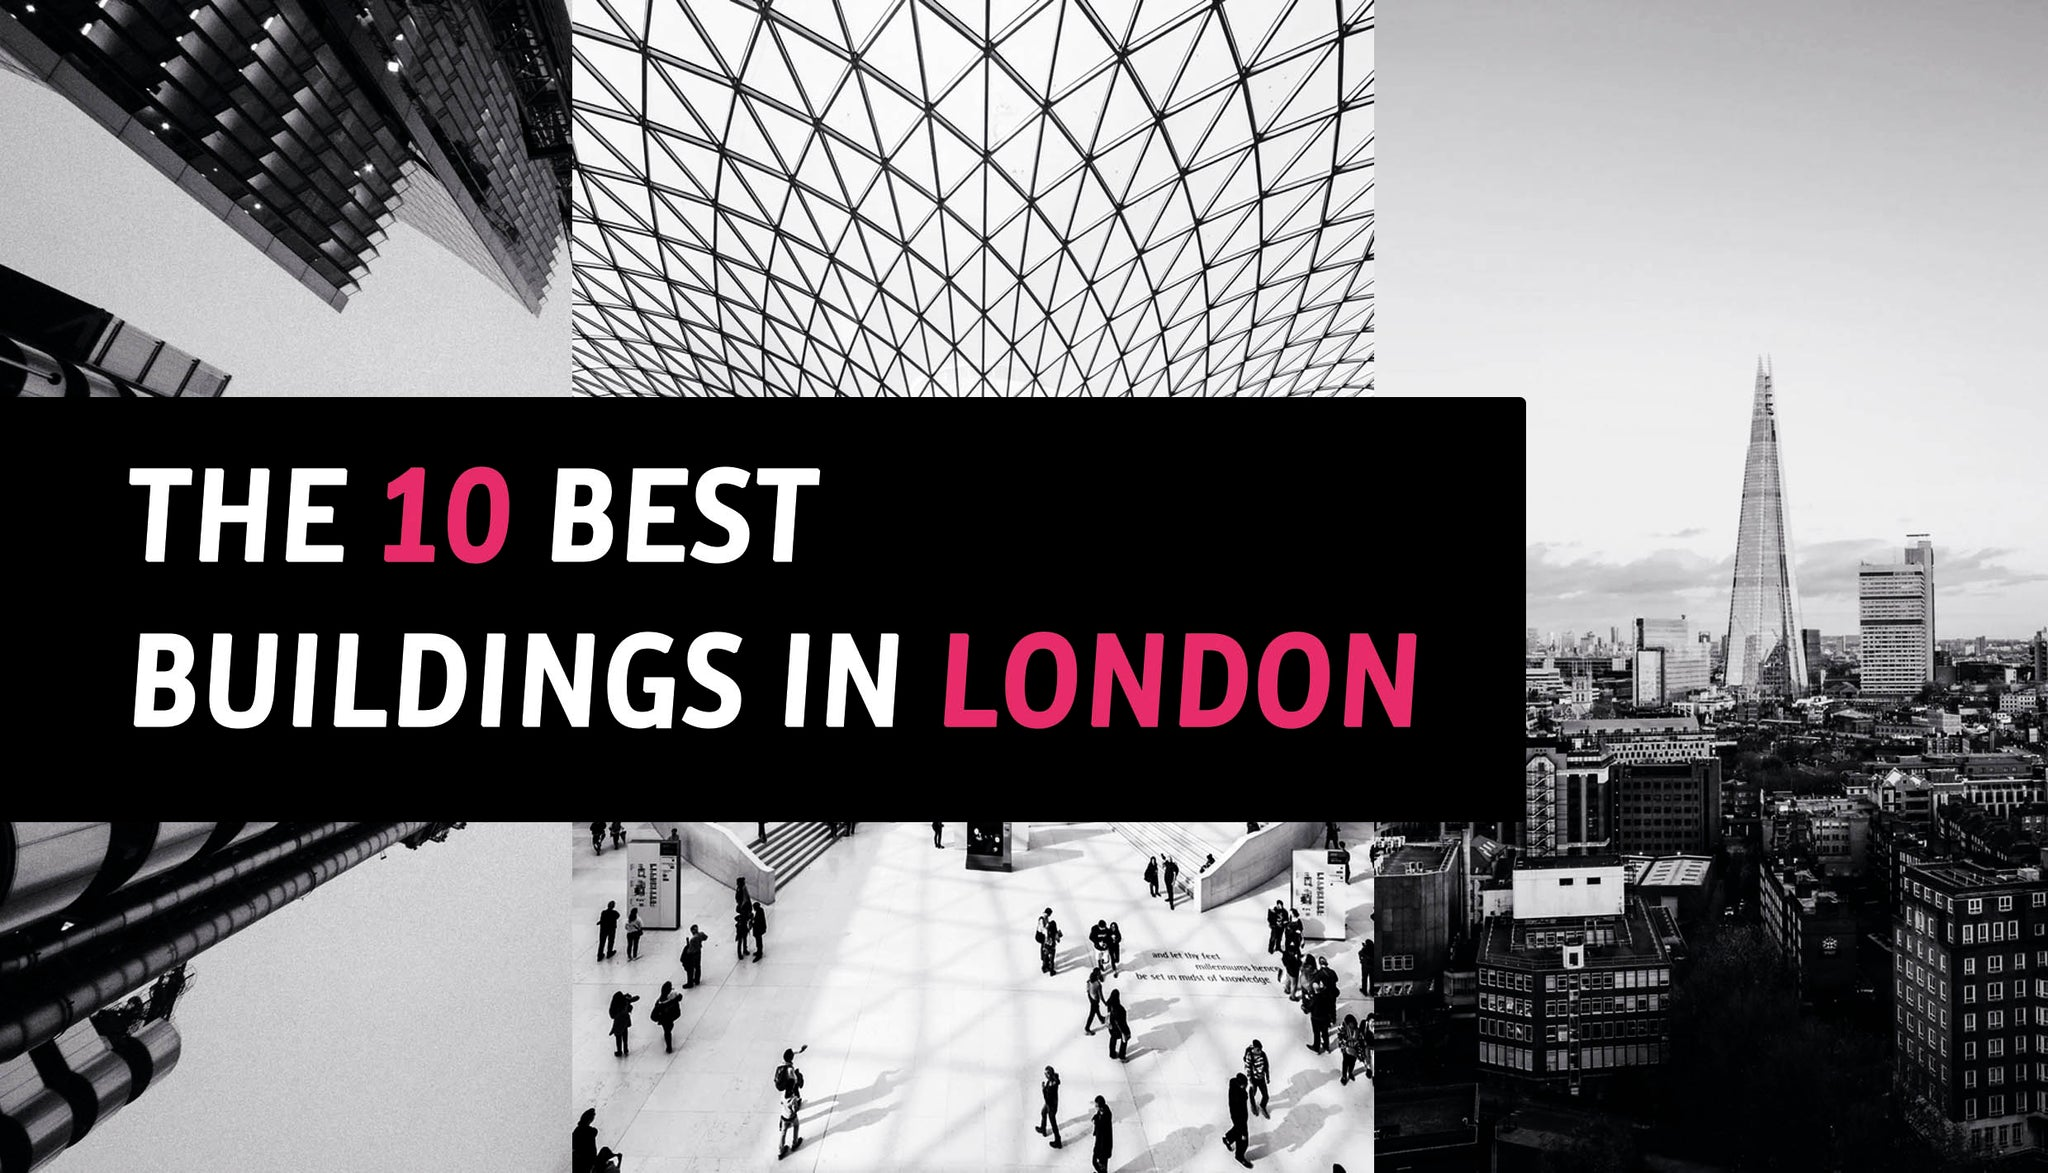 The 10 Best Buildings in London